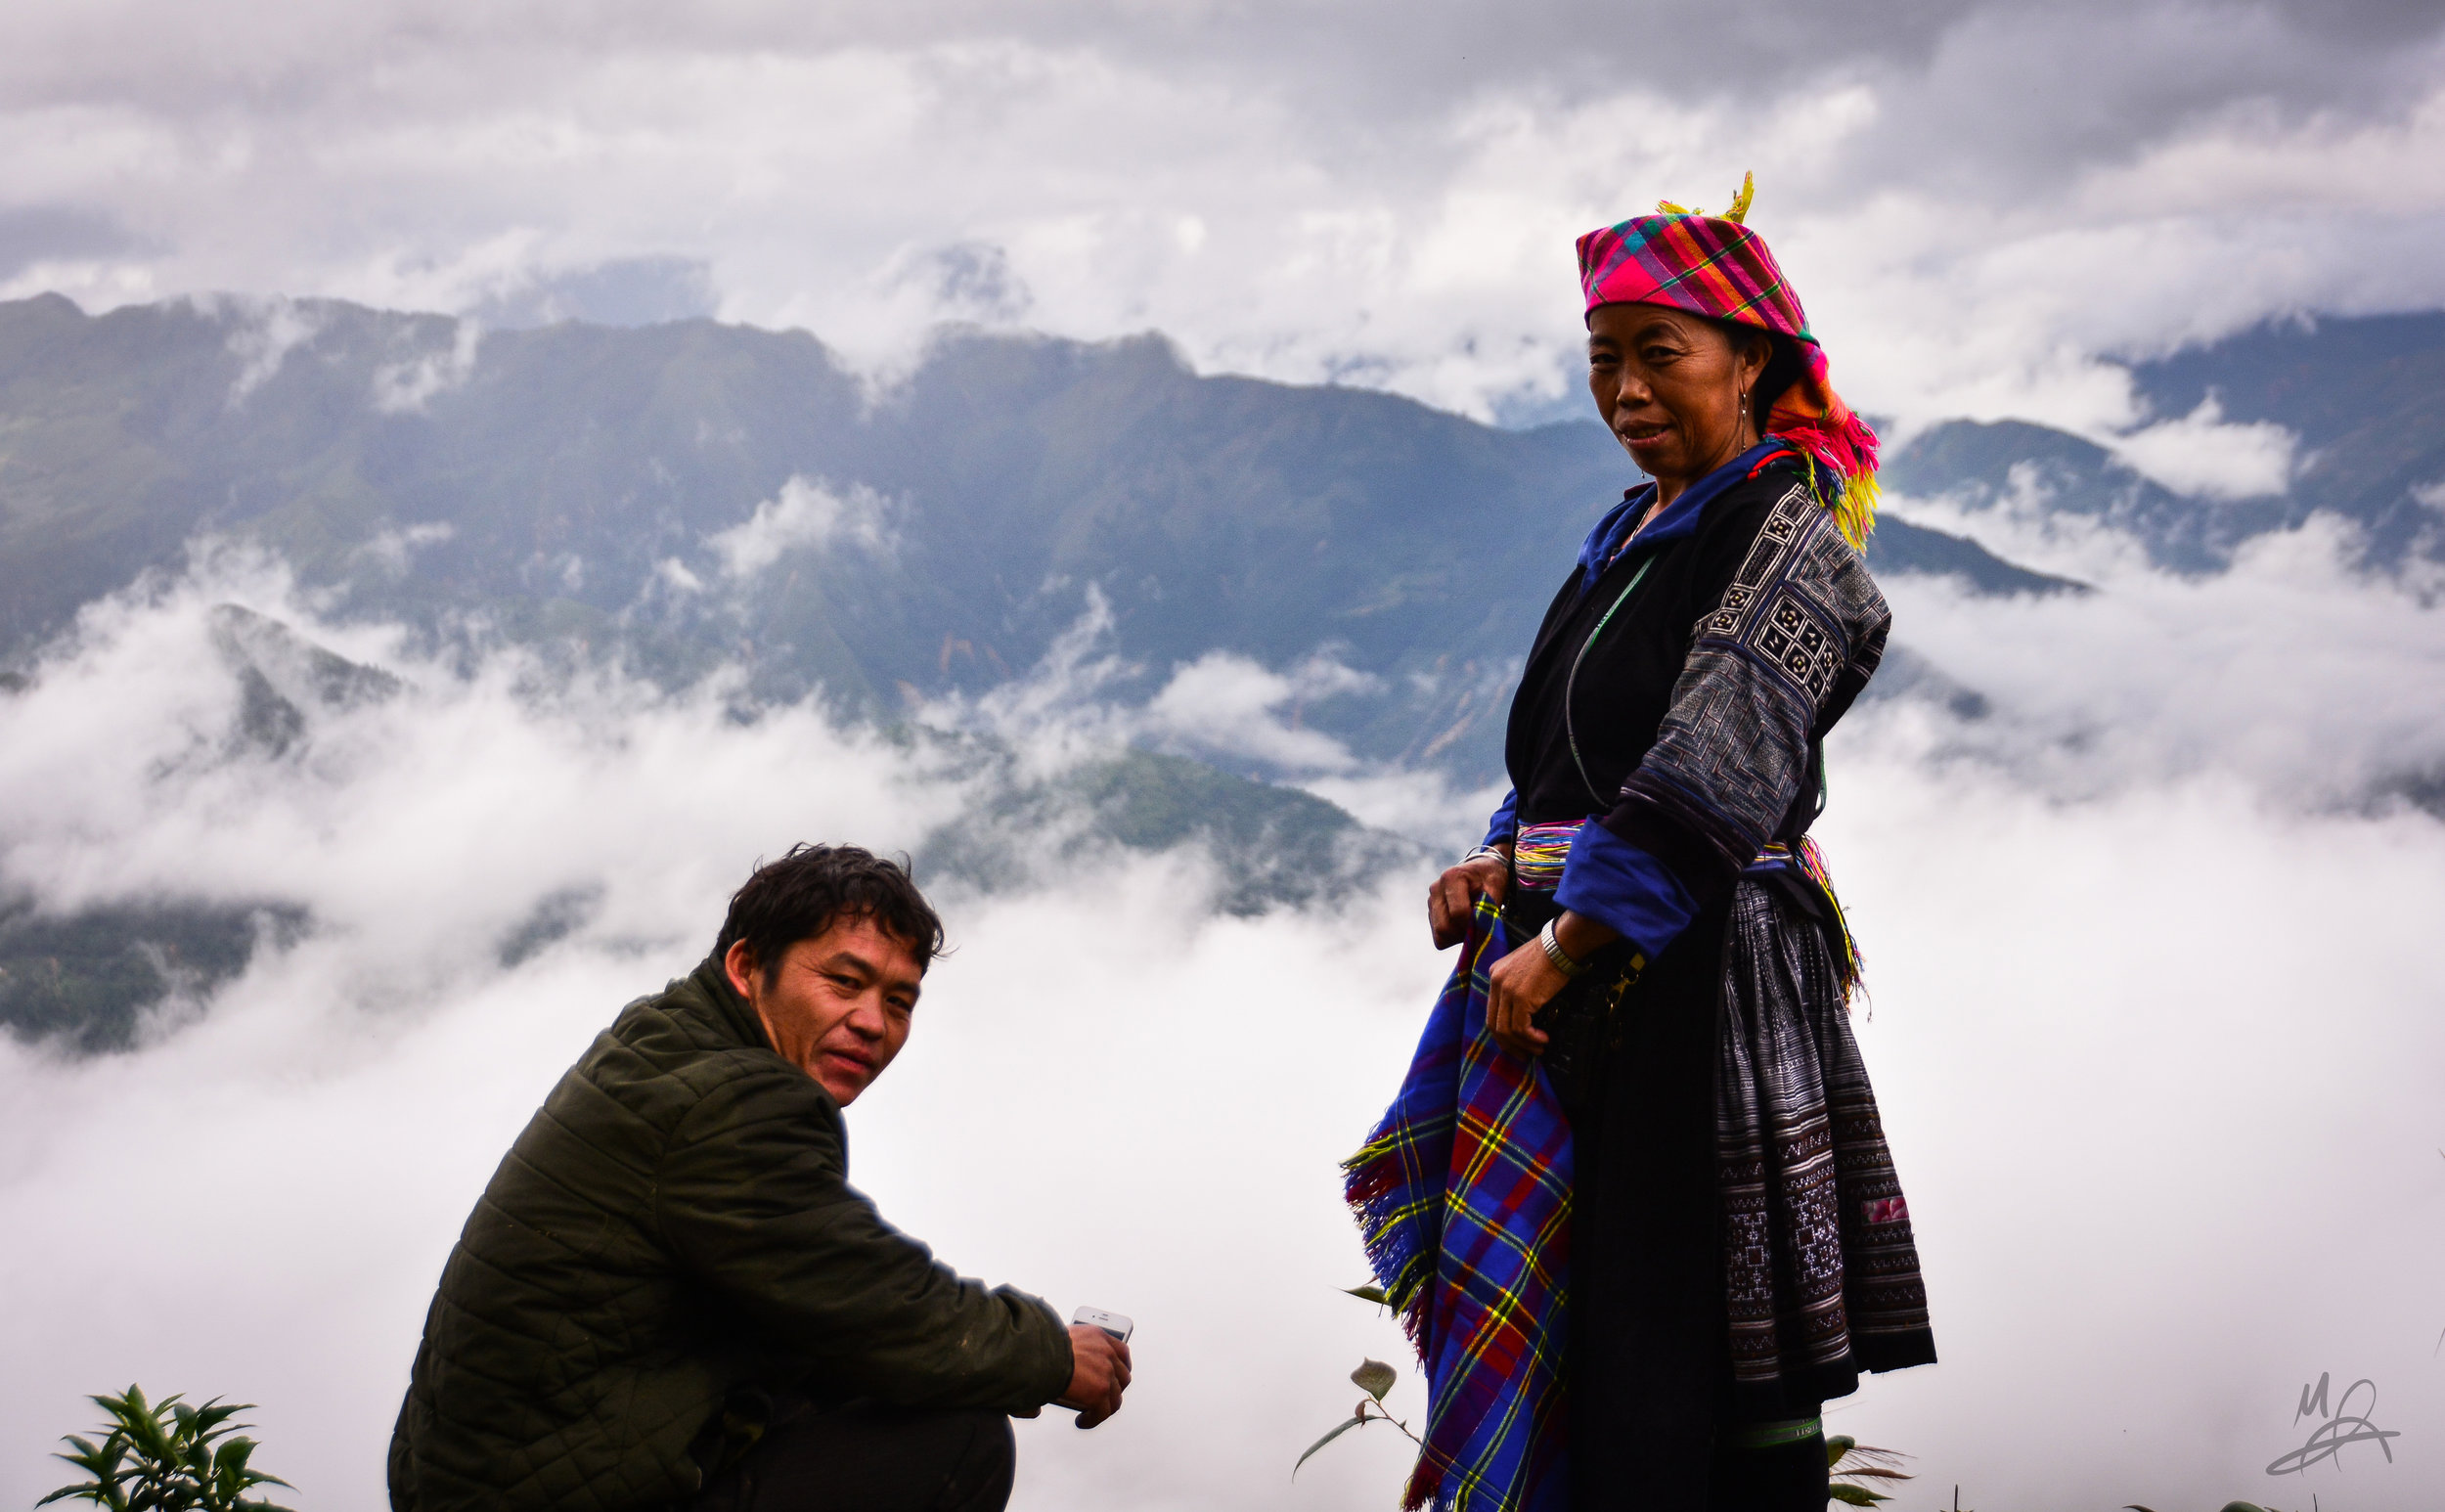 A woman, a man and the mountains